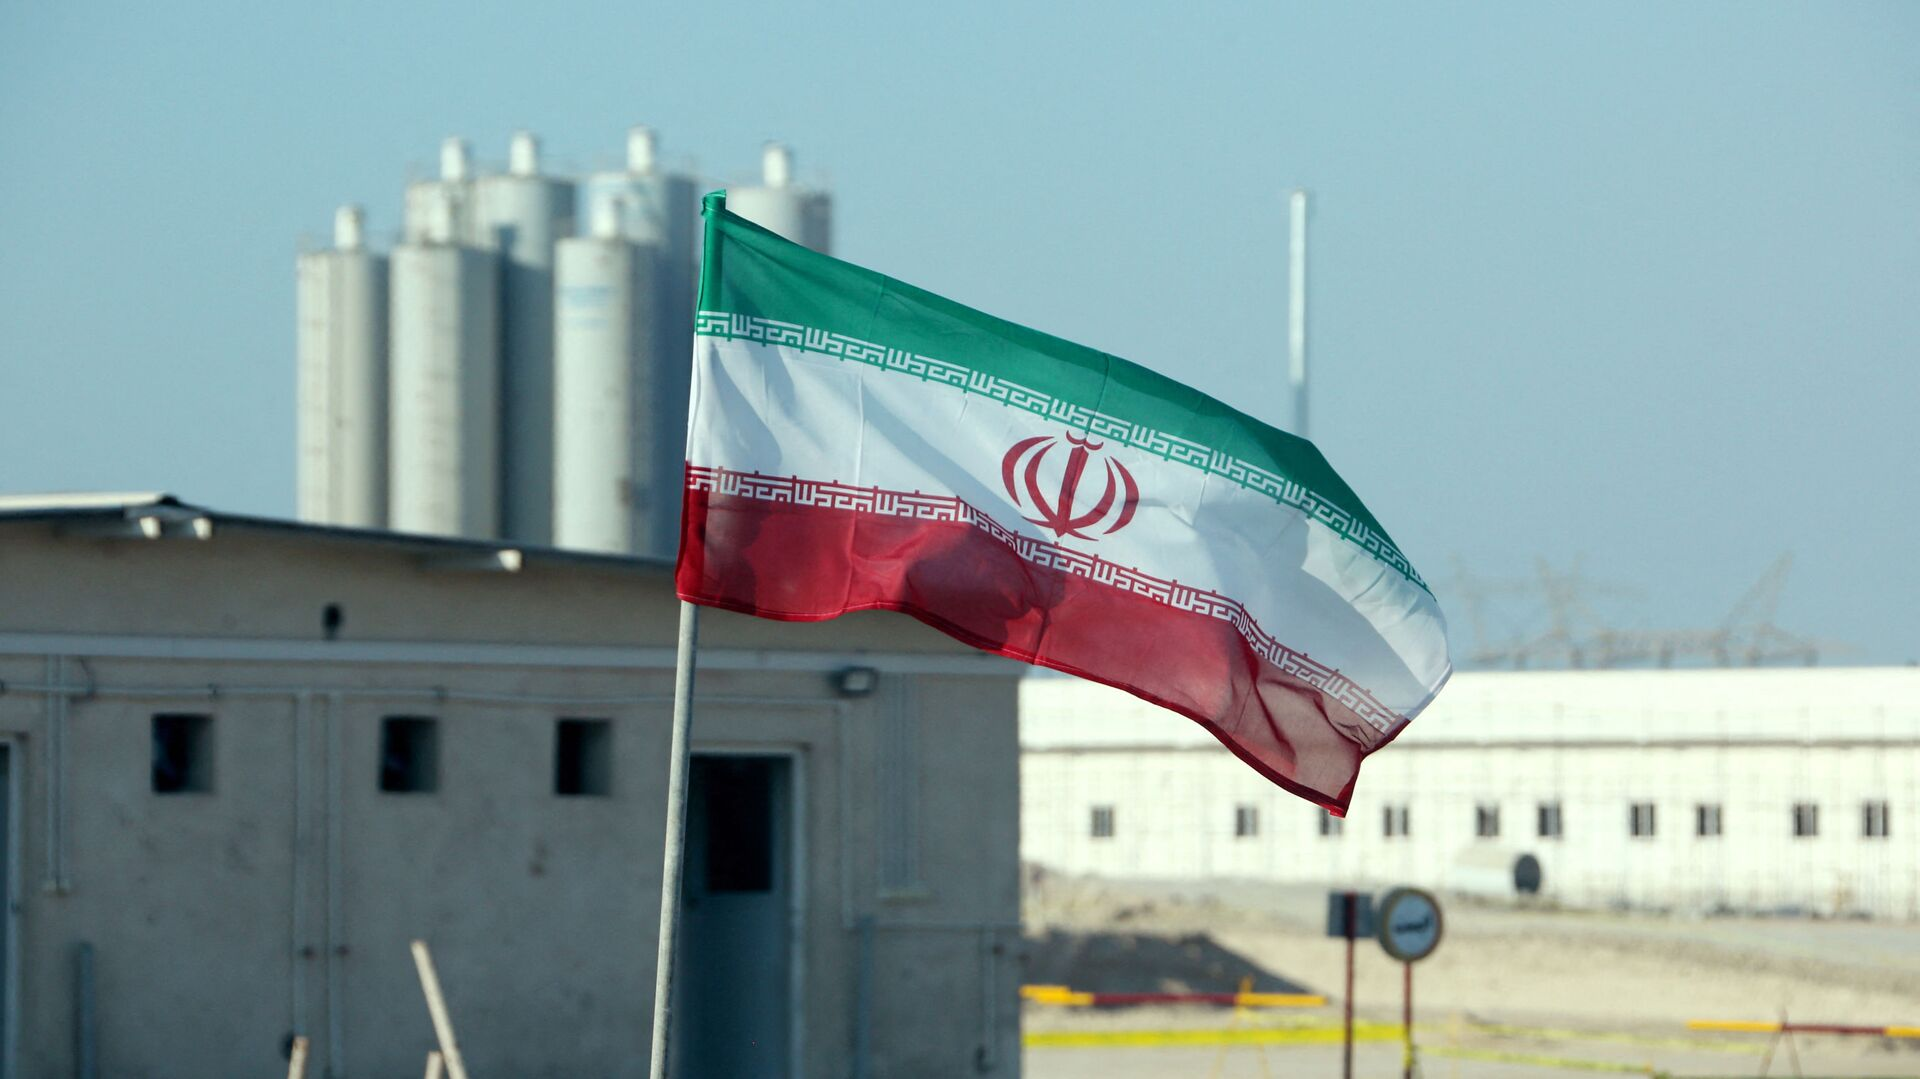 A picture taken on November 10, 2019, shows an Iranian flag in Iran's Bushehr nuclear power plant, during an official ceremony to kick-start works on a second reactor at the facility - Sputnik International, 1920, 24.09.2021